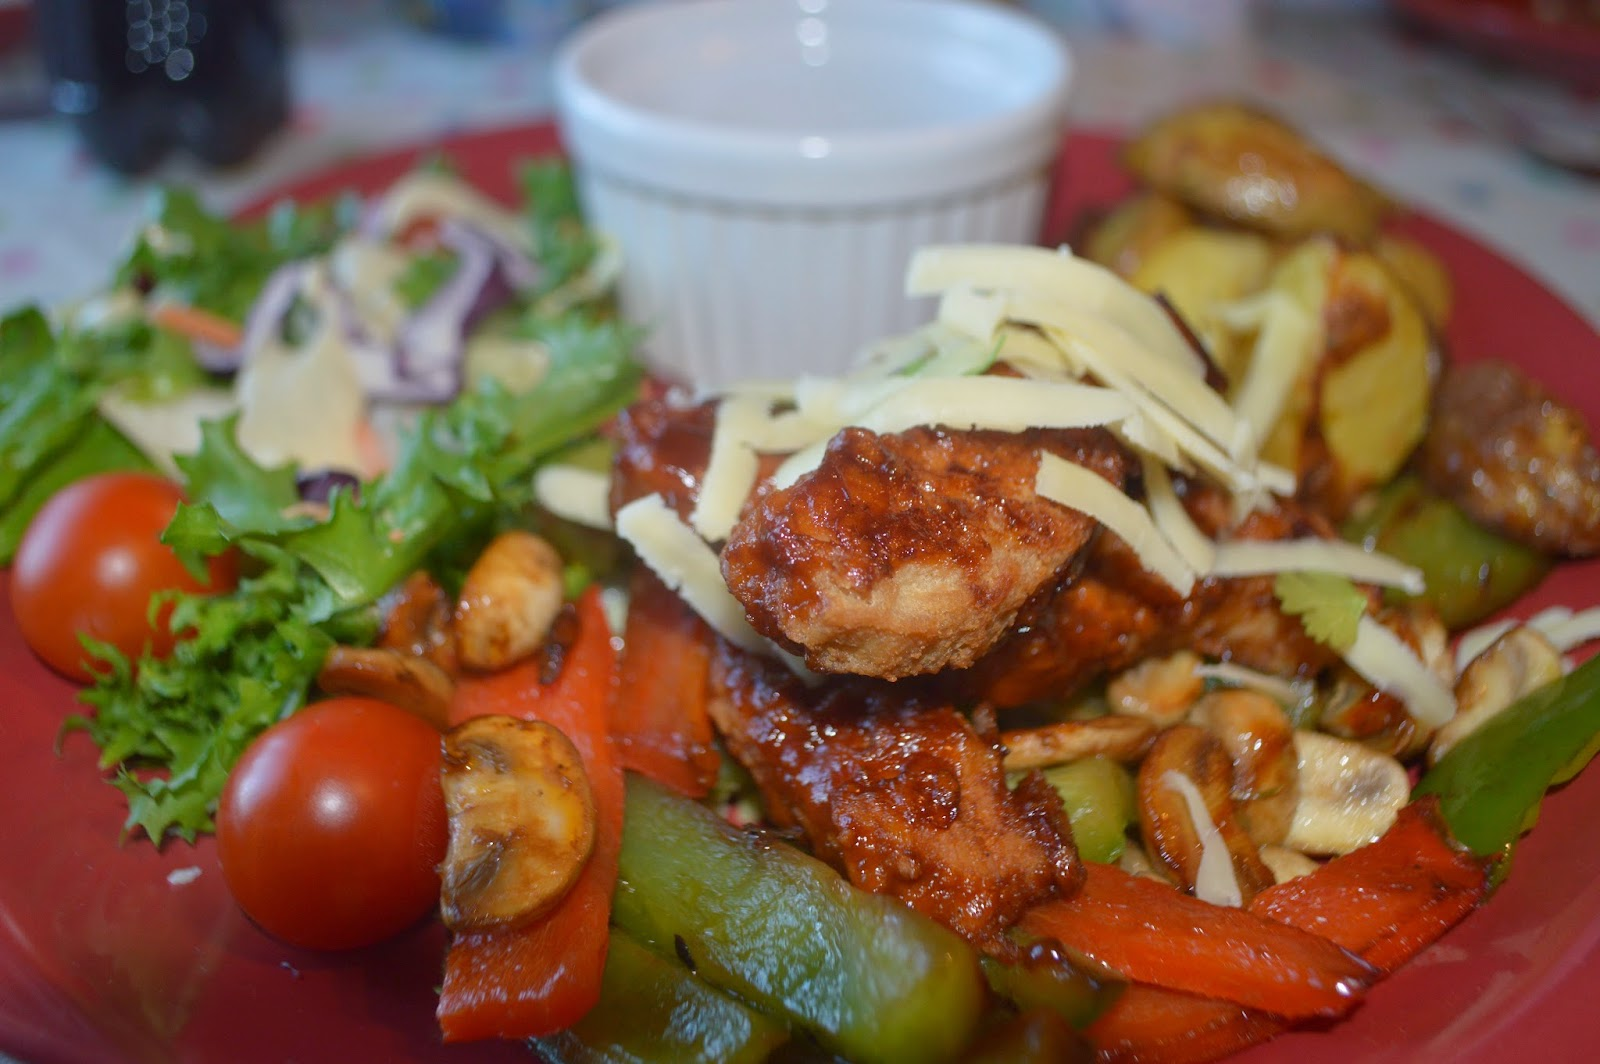 Heinz, Asda, Barbecue Chicken, Homemade Potato Wedges, BBQ Dip, Salad, Mushrooms, peppers, Stir Fry, Recipe, Food, healthy, #shop